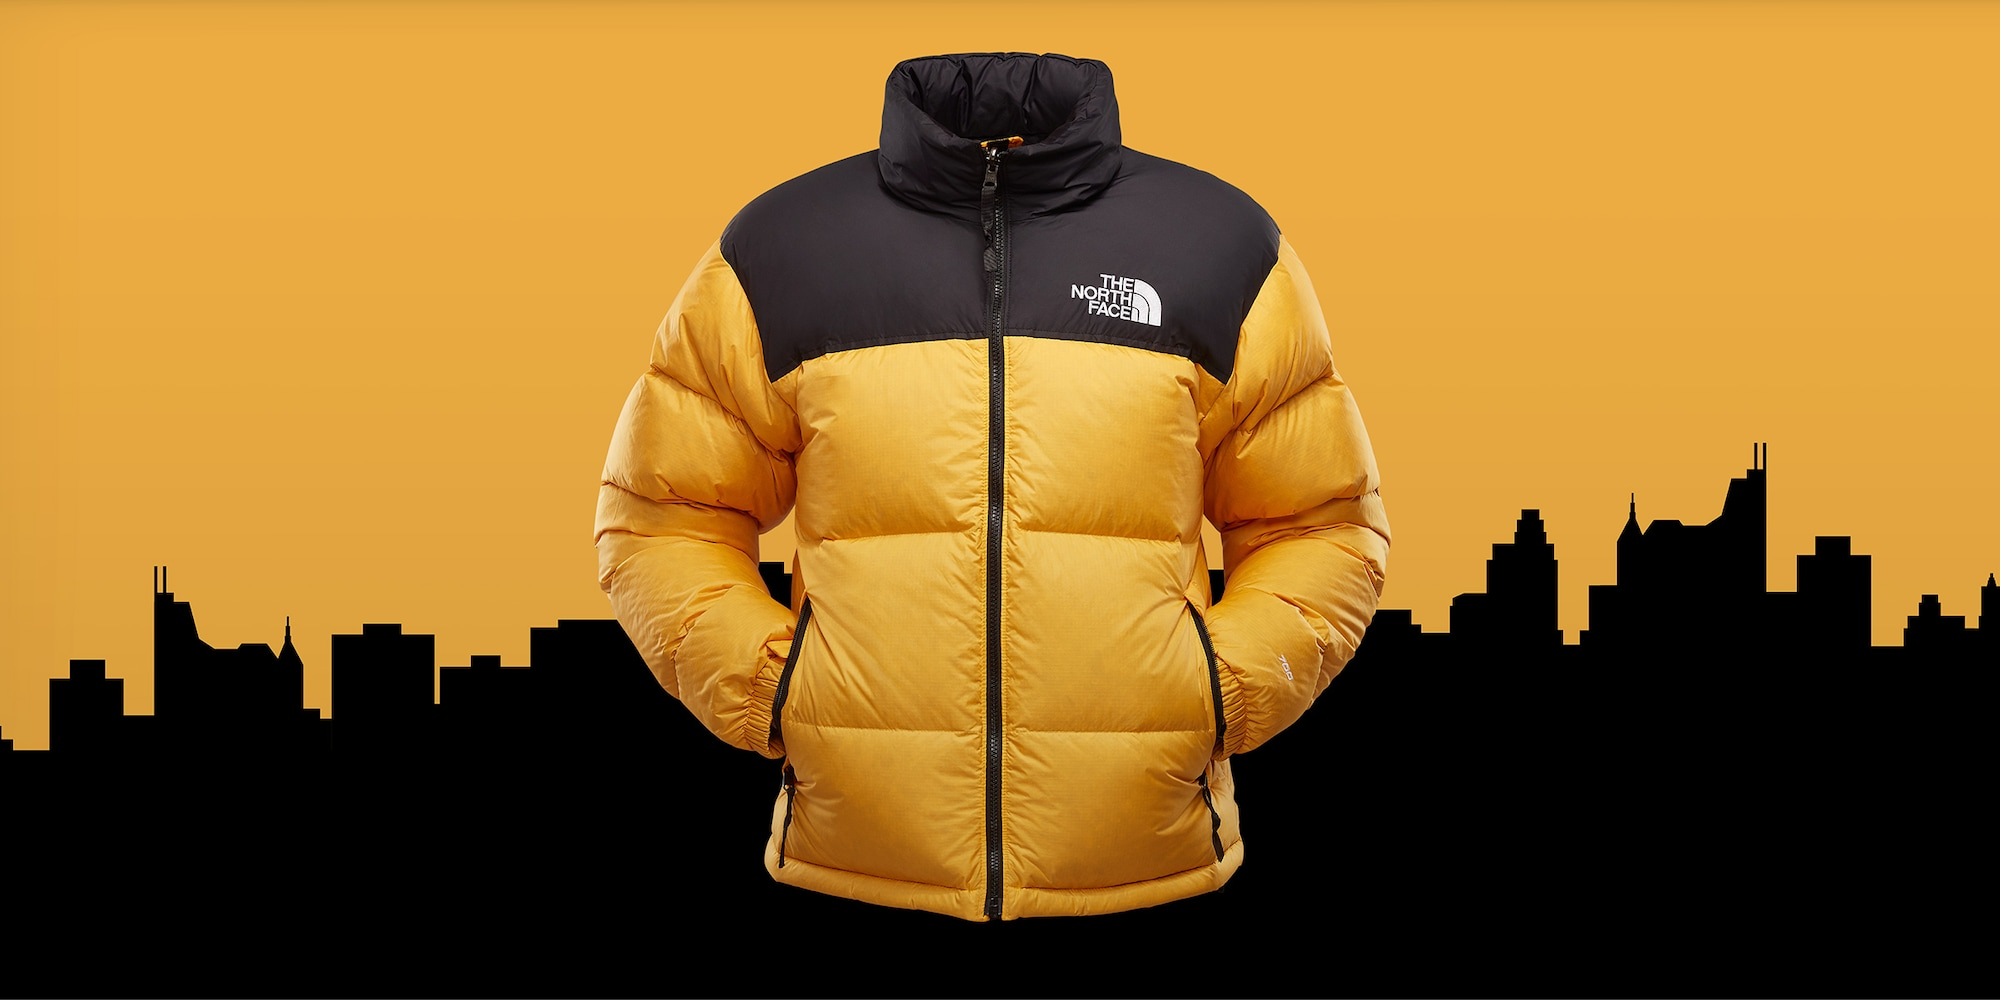 Made for the Mountains The North Face